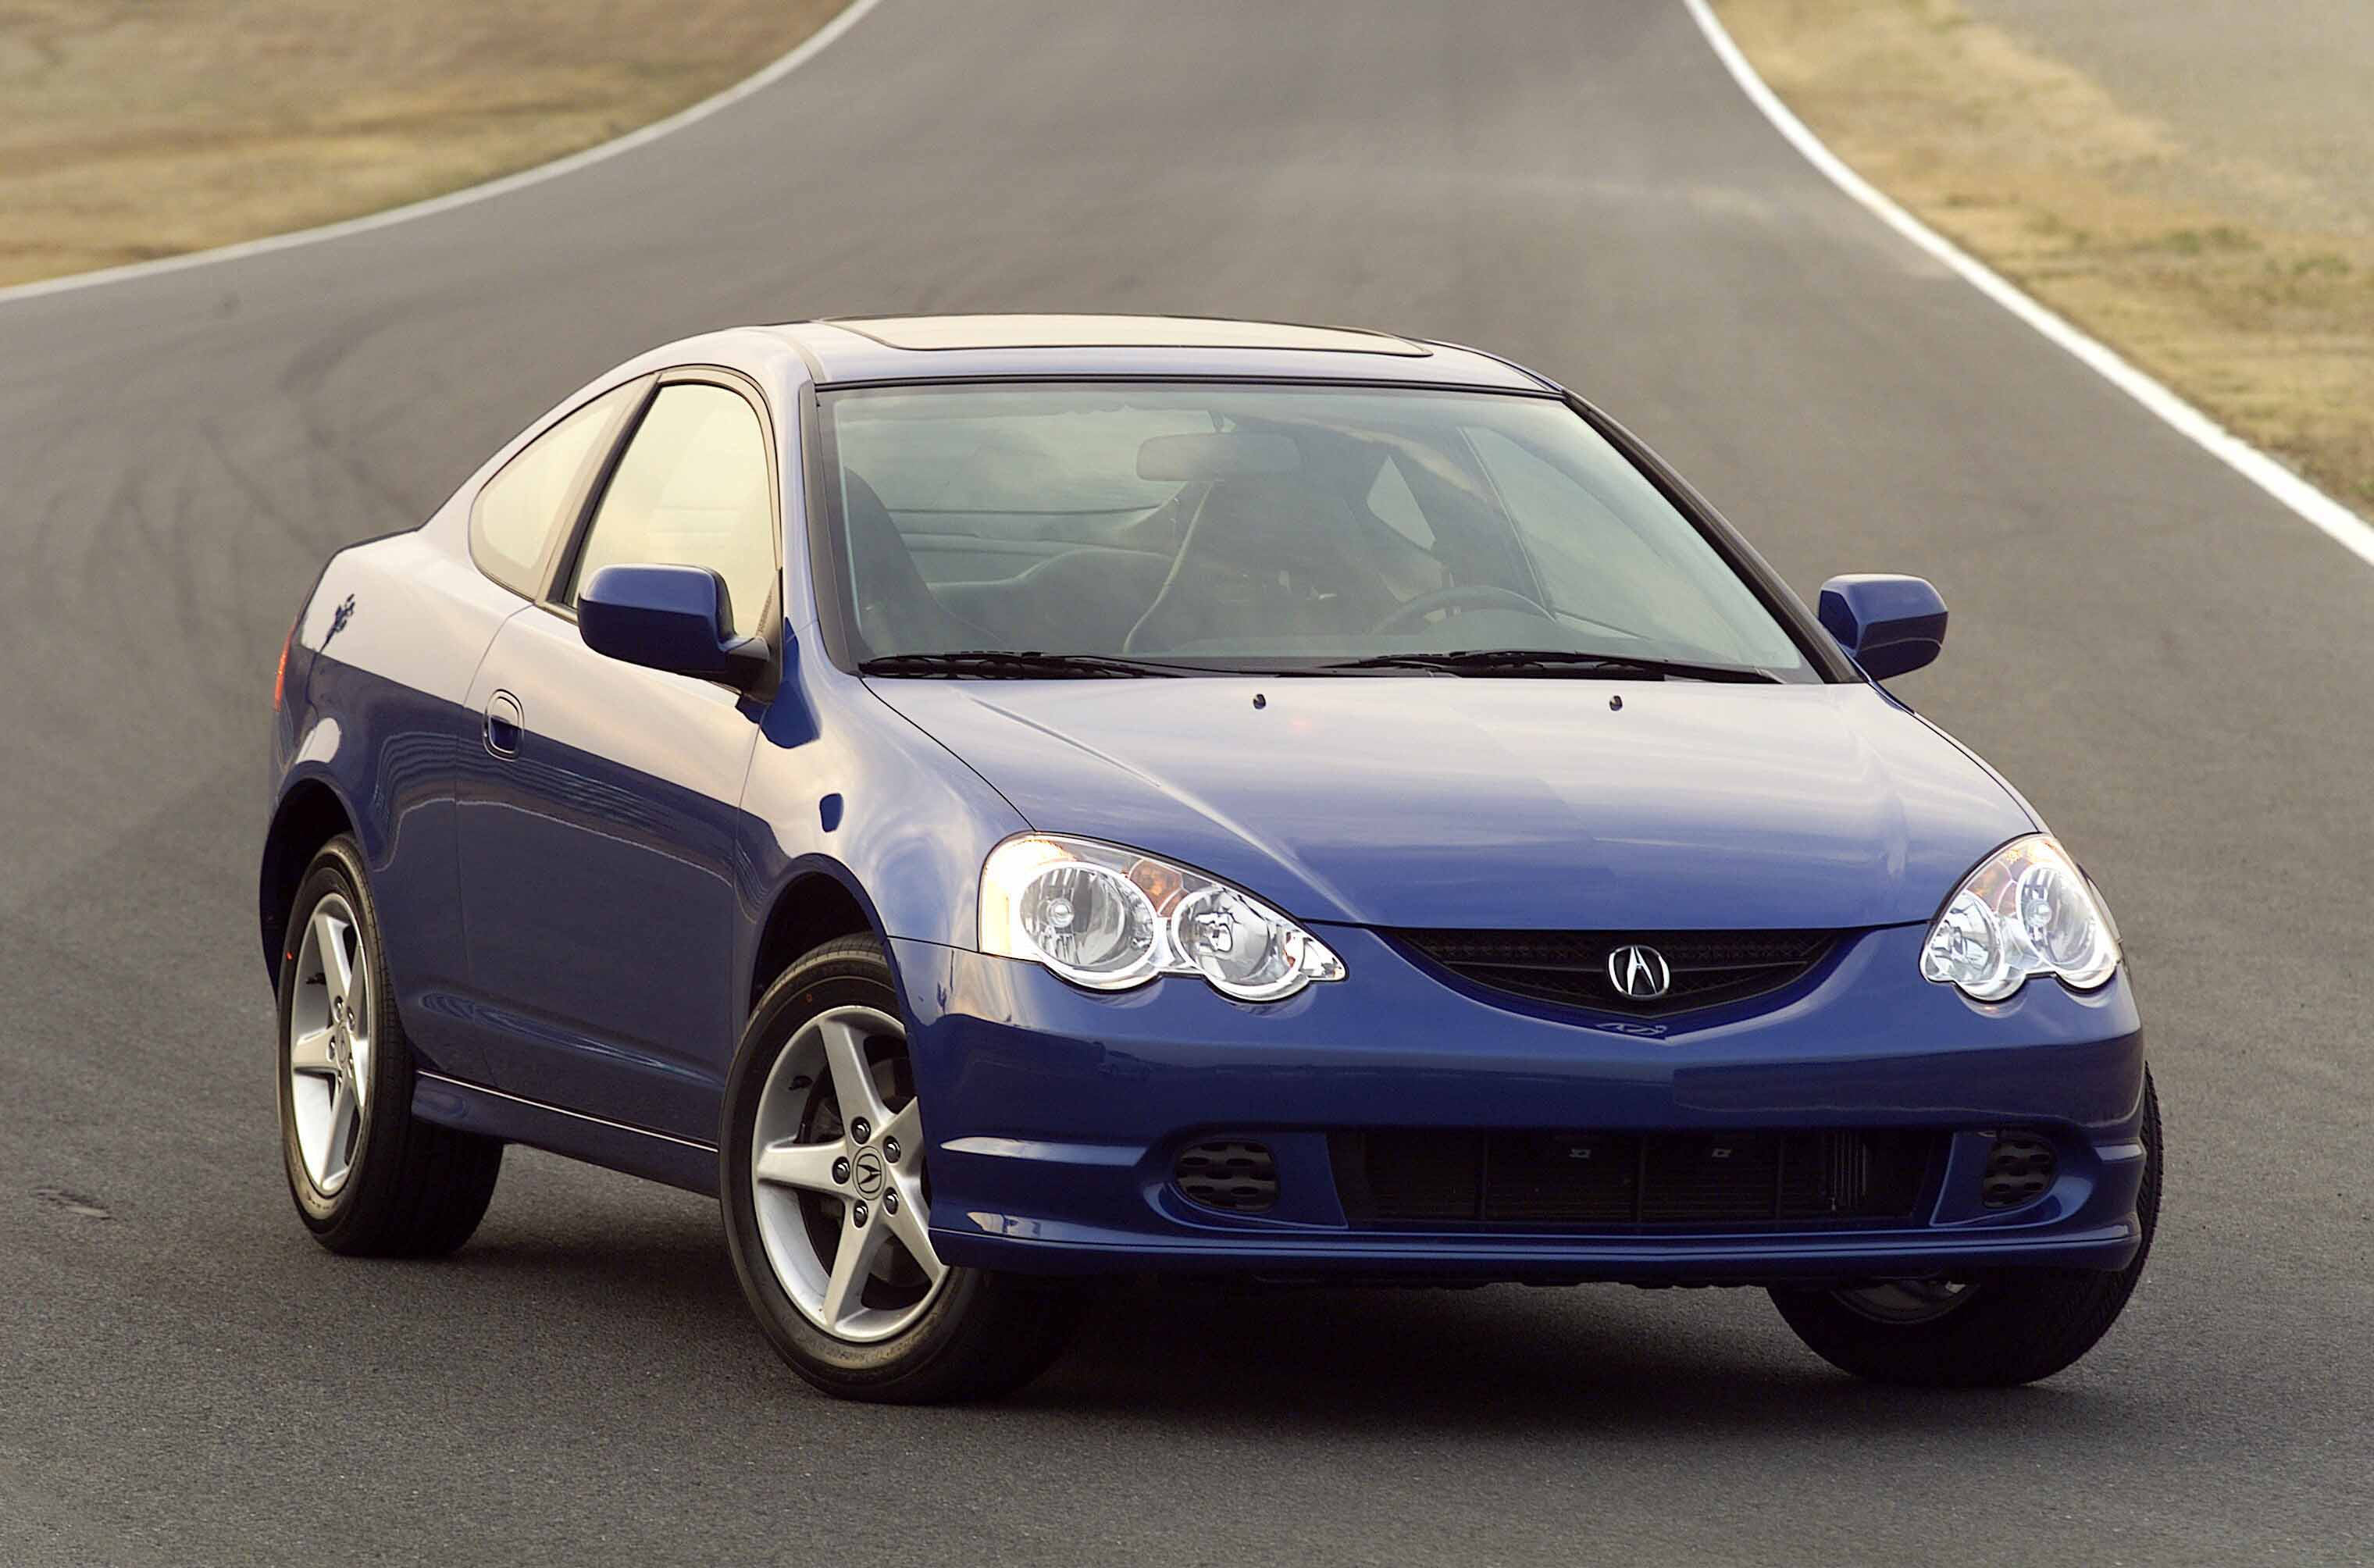 2002 acura rsx type s fuel infection rh fuel infection com acura rsx type s repair manual download acura rsx type s service manual